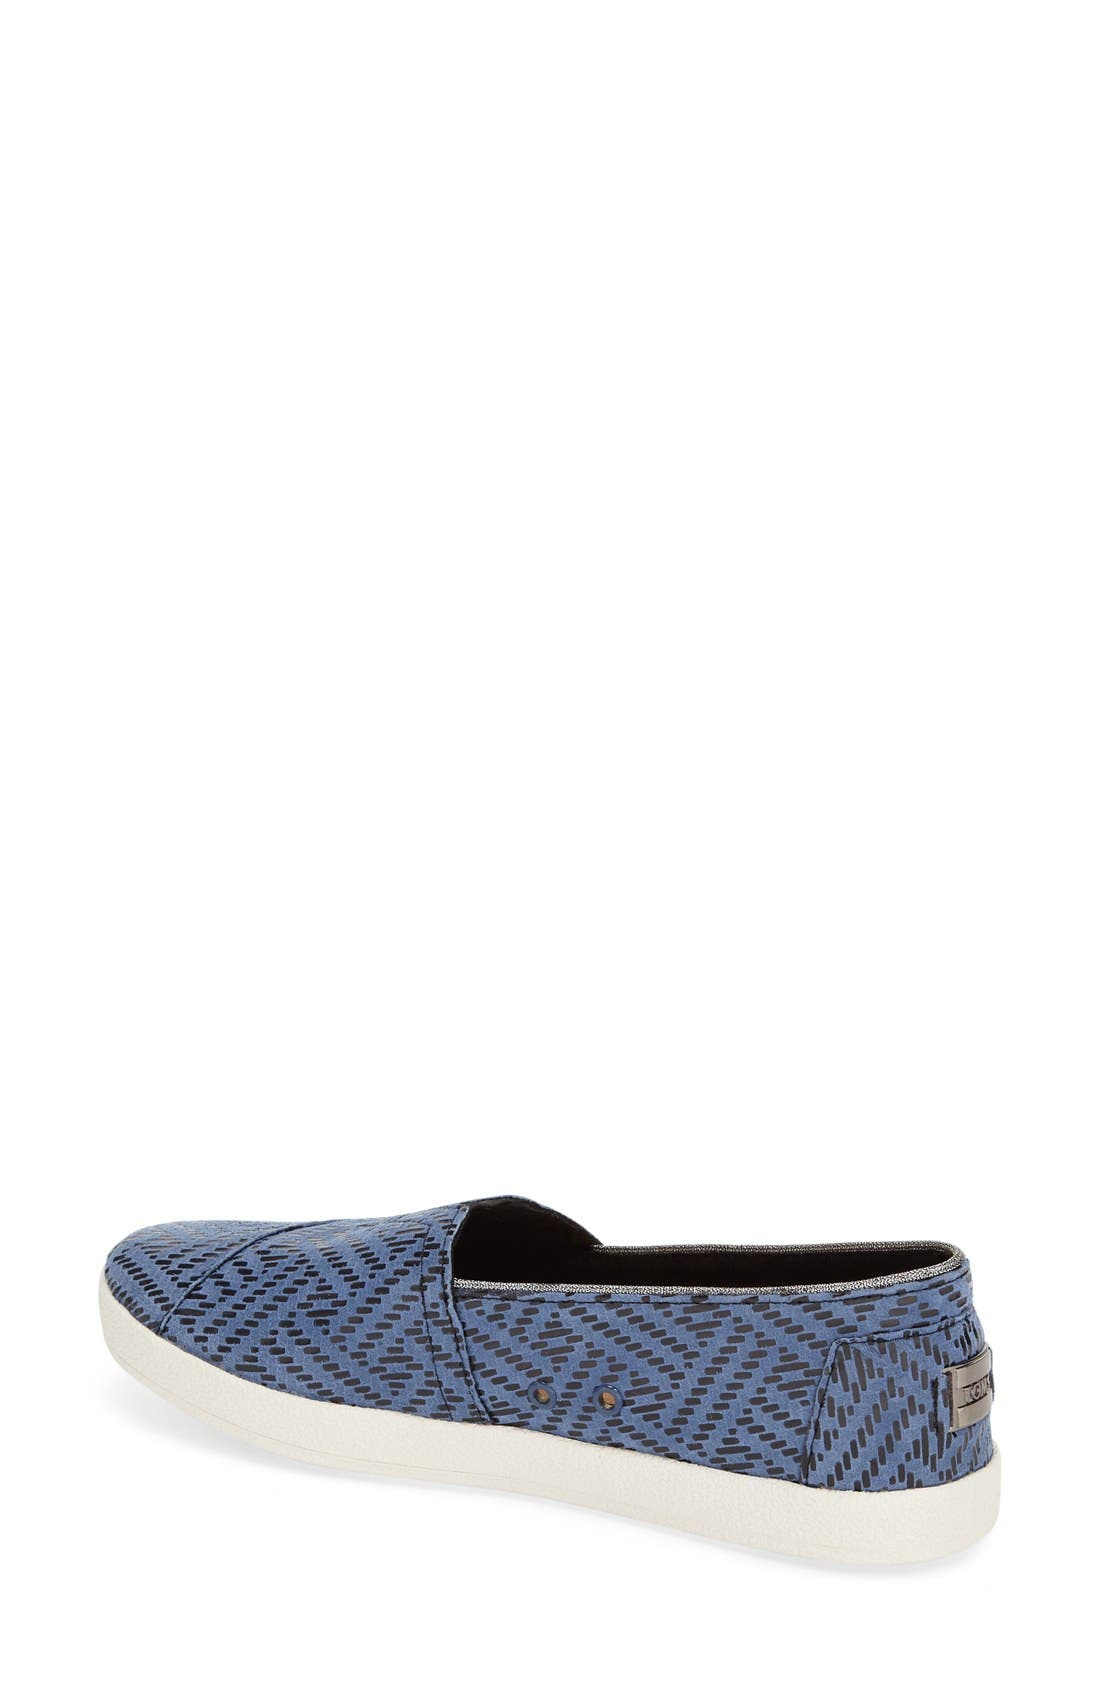 TOMS,                             'Avalon' Leather Slip-On,                             Alternate thumbnail 3, color,                             420